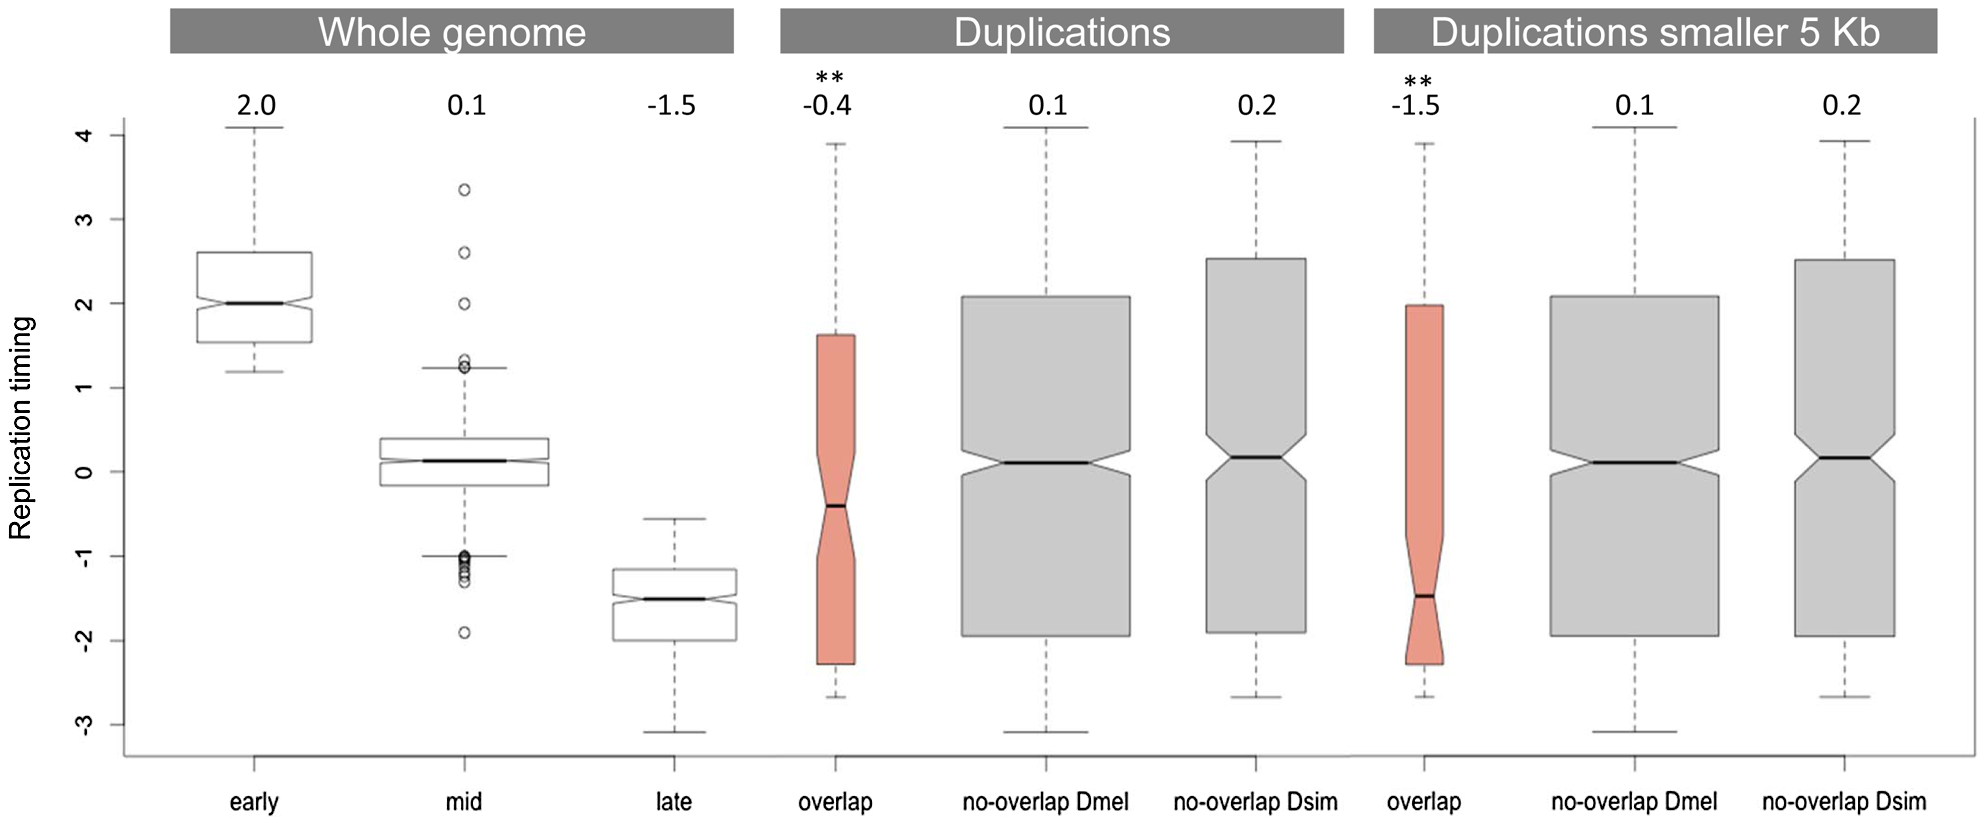 Replication timing of duplications overlapping between <i>D. simulans</i> and <i>D. melanogaster</i>.